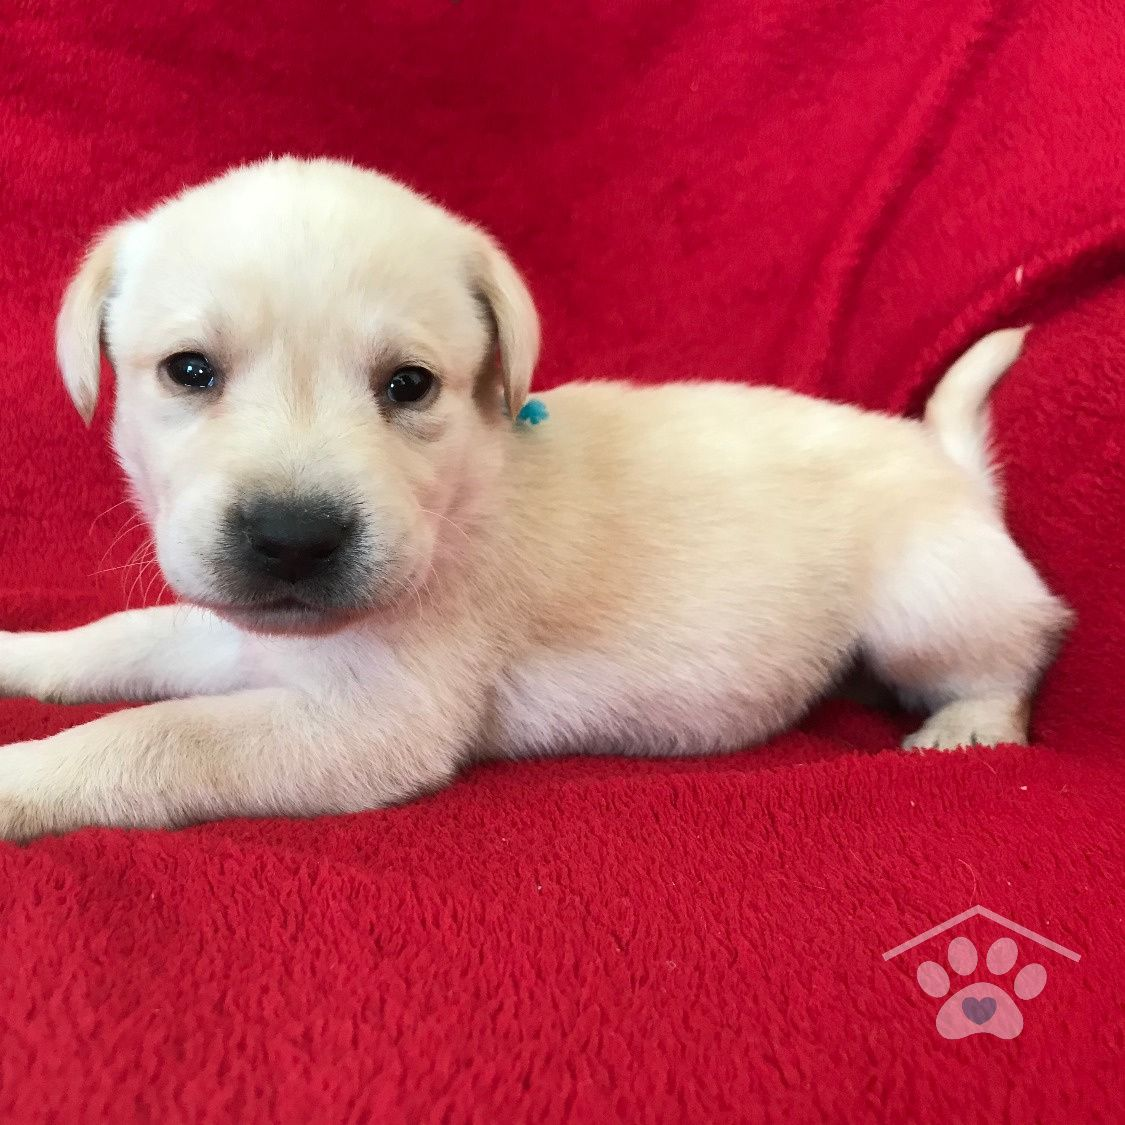 Meet Flash! He is an active purebred male Labrador